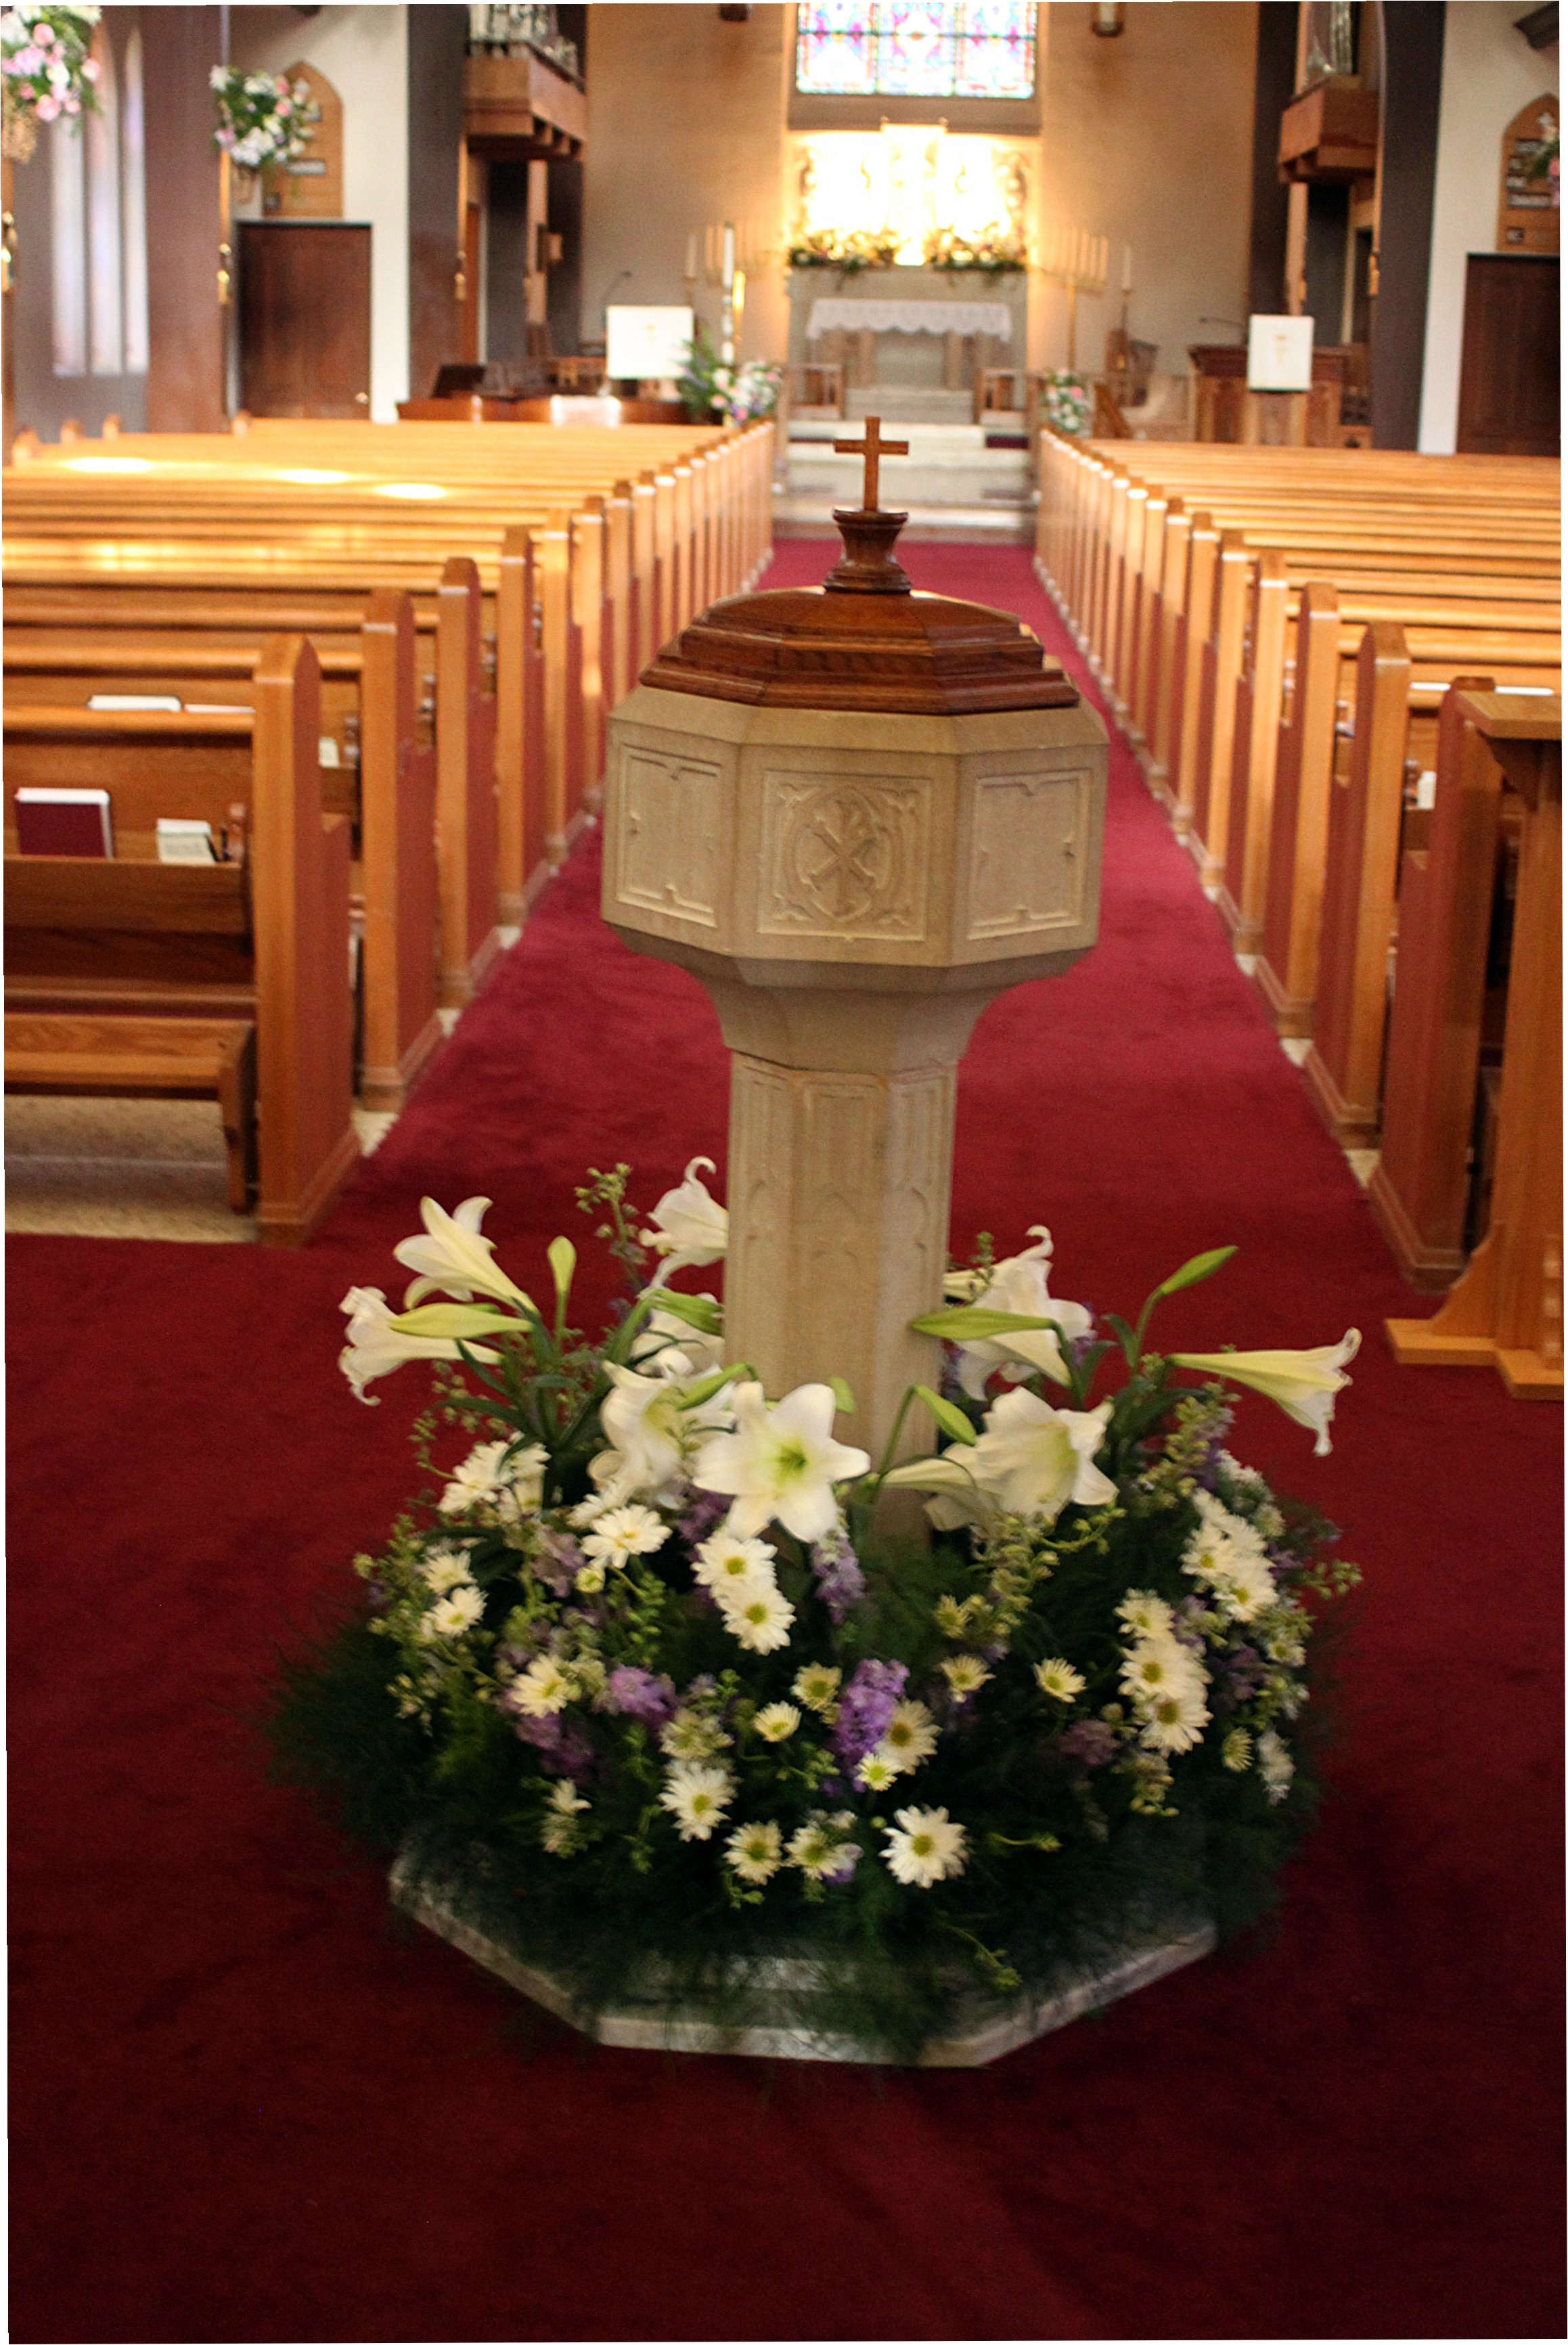 A Flower Guild S Ministry Episcopal Church Of The